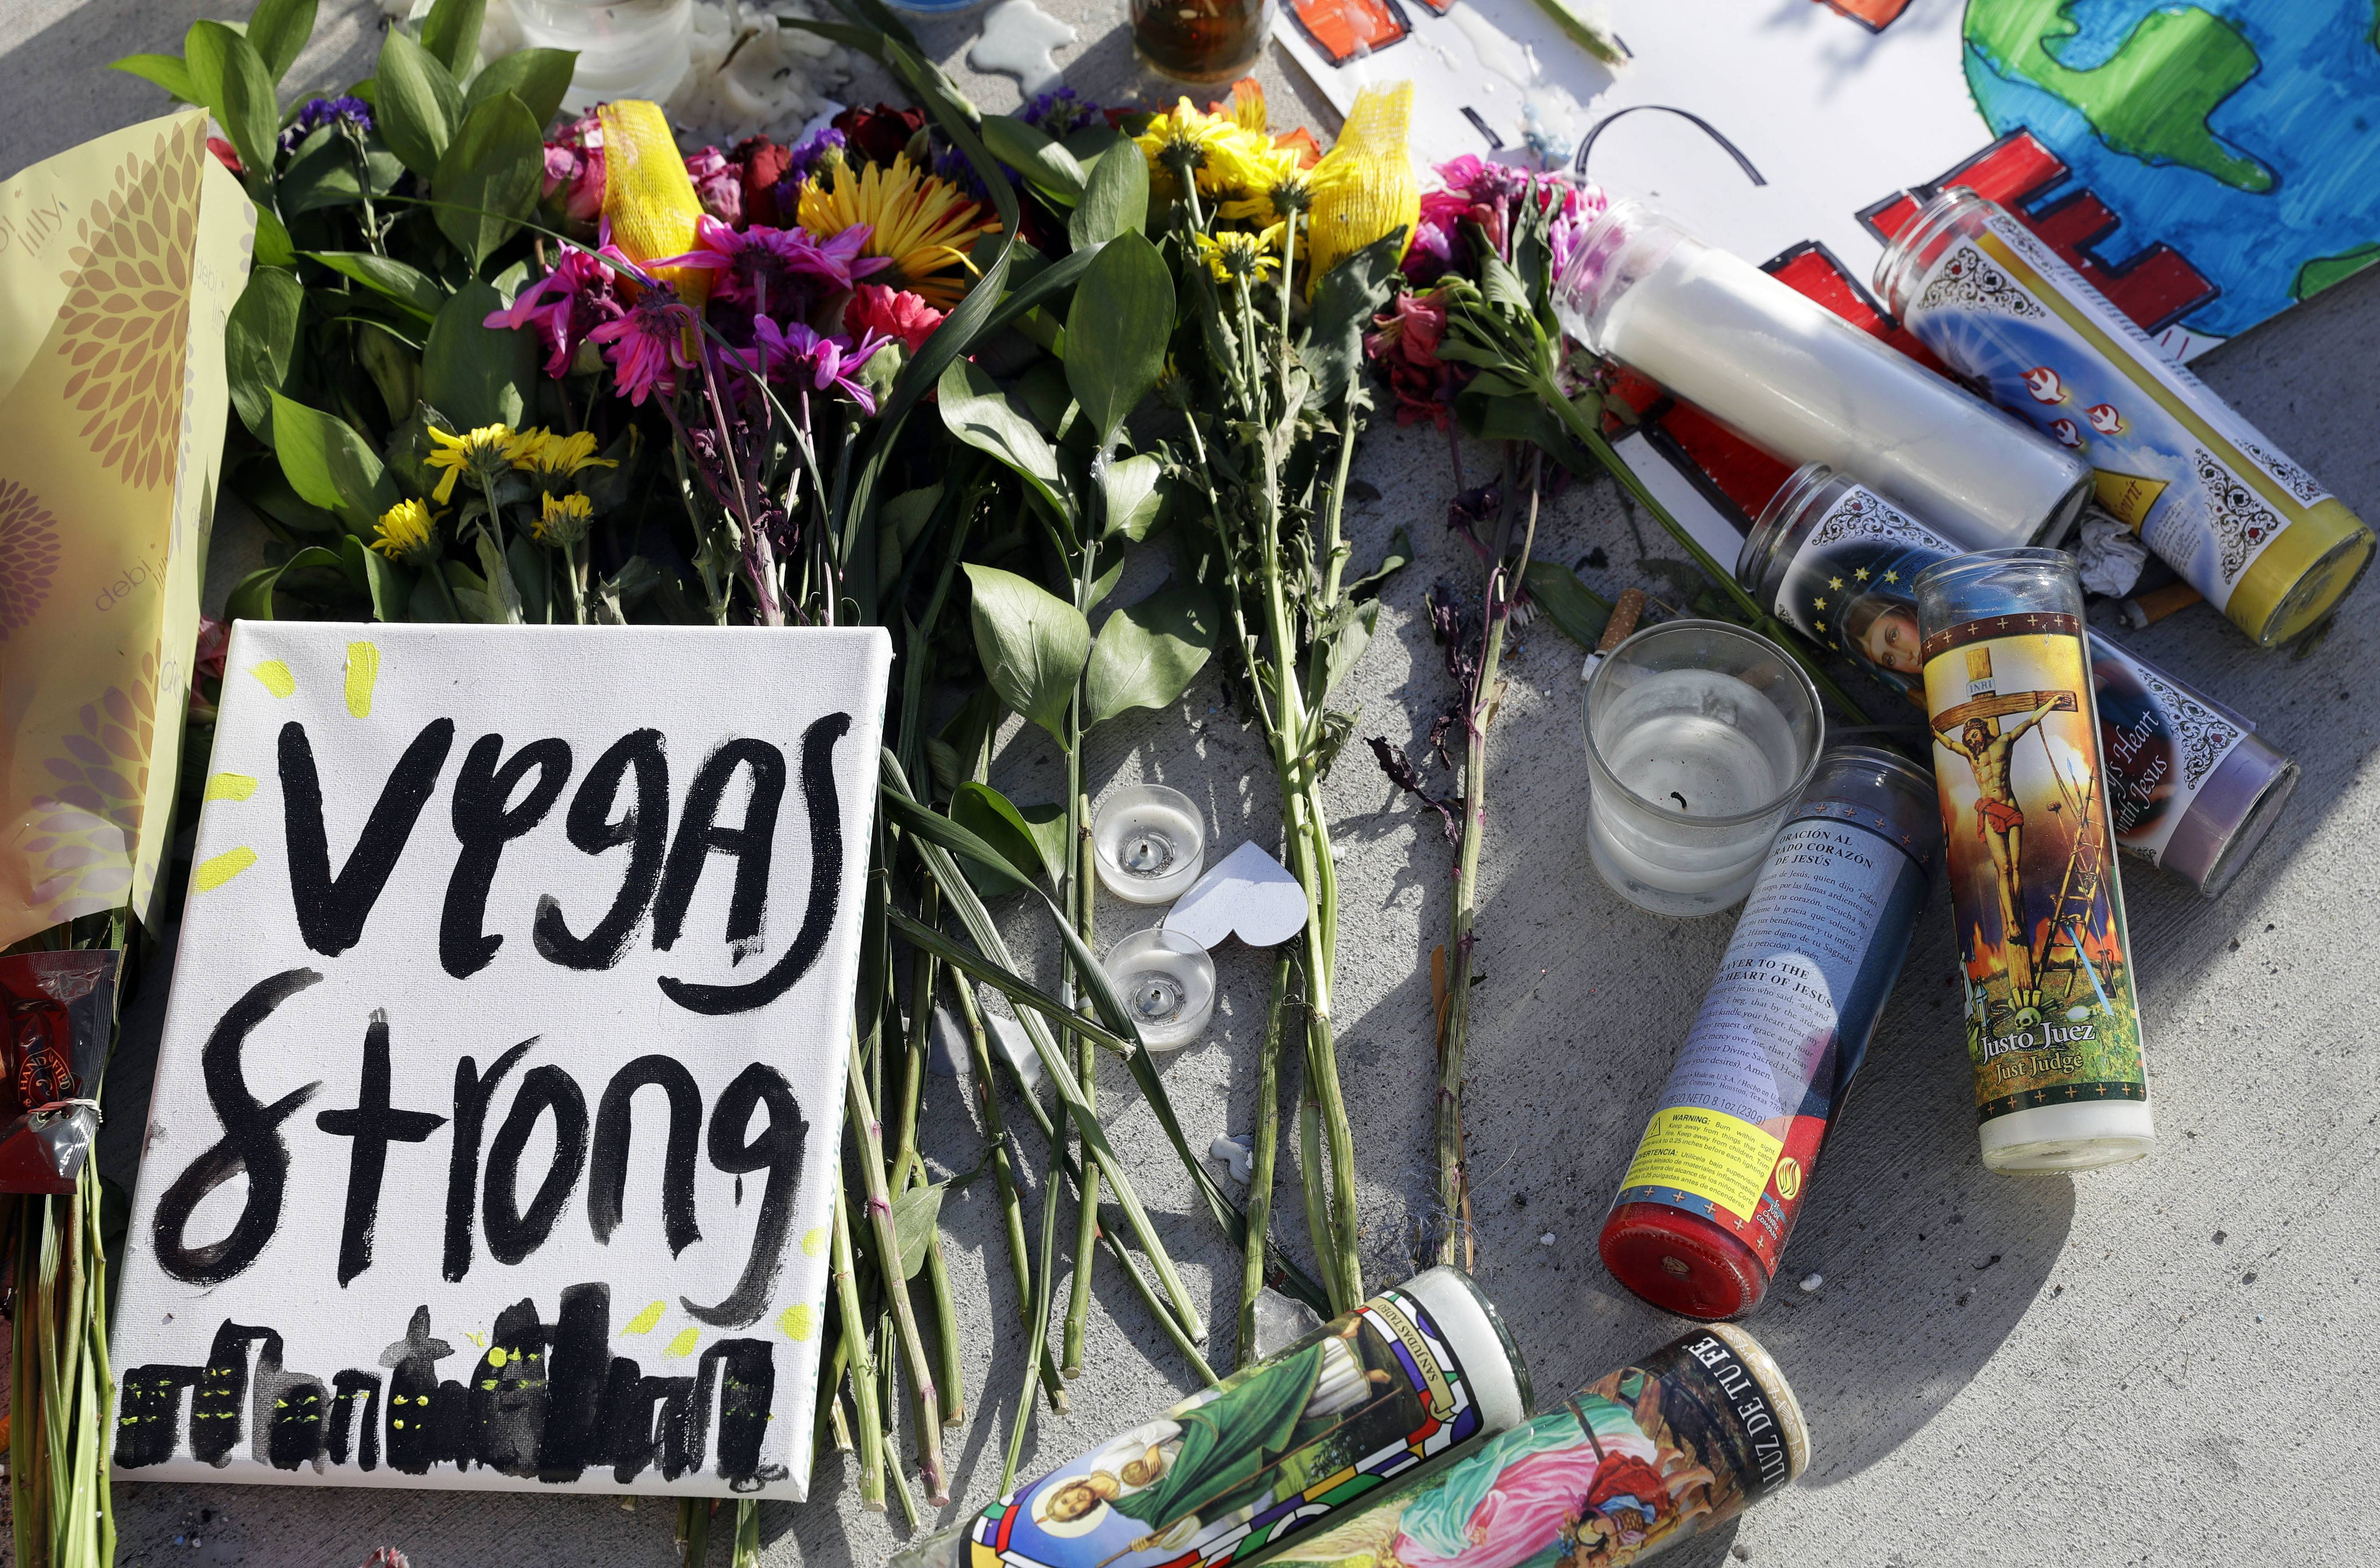 Editorial: Let's forget Las Vegas killer's name